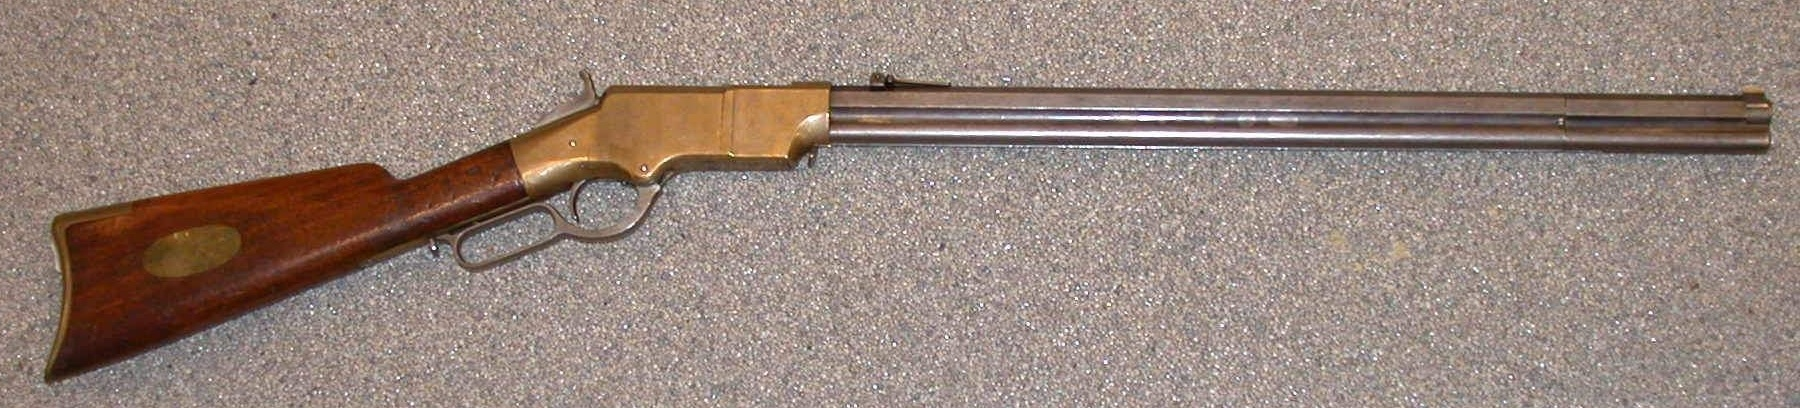 henry 22 rifle one of the most classic and iconic rifles on the market today